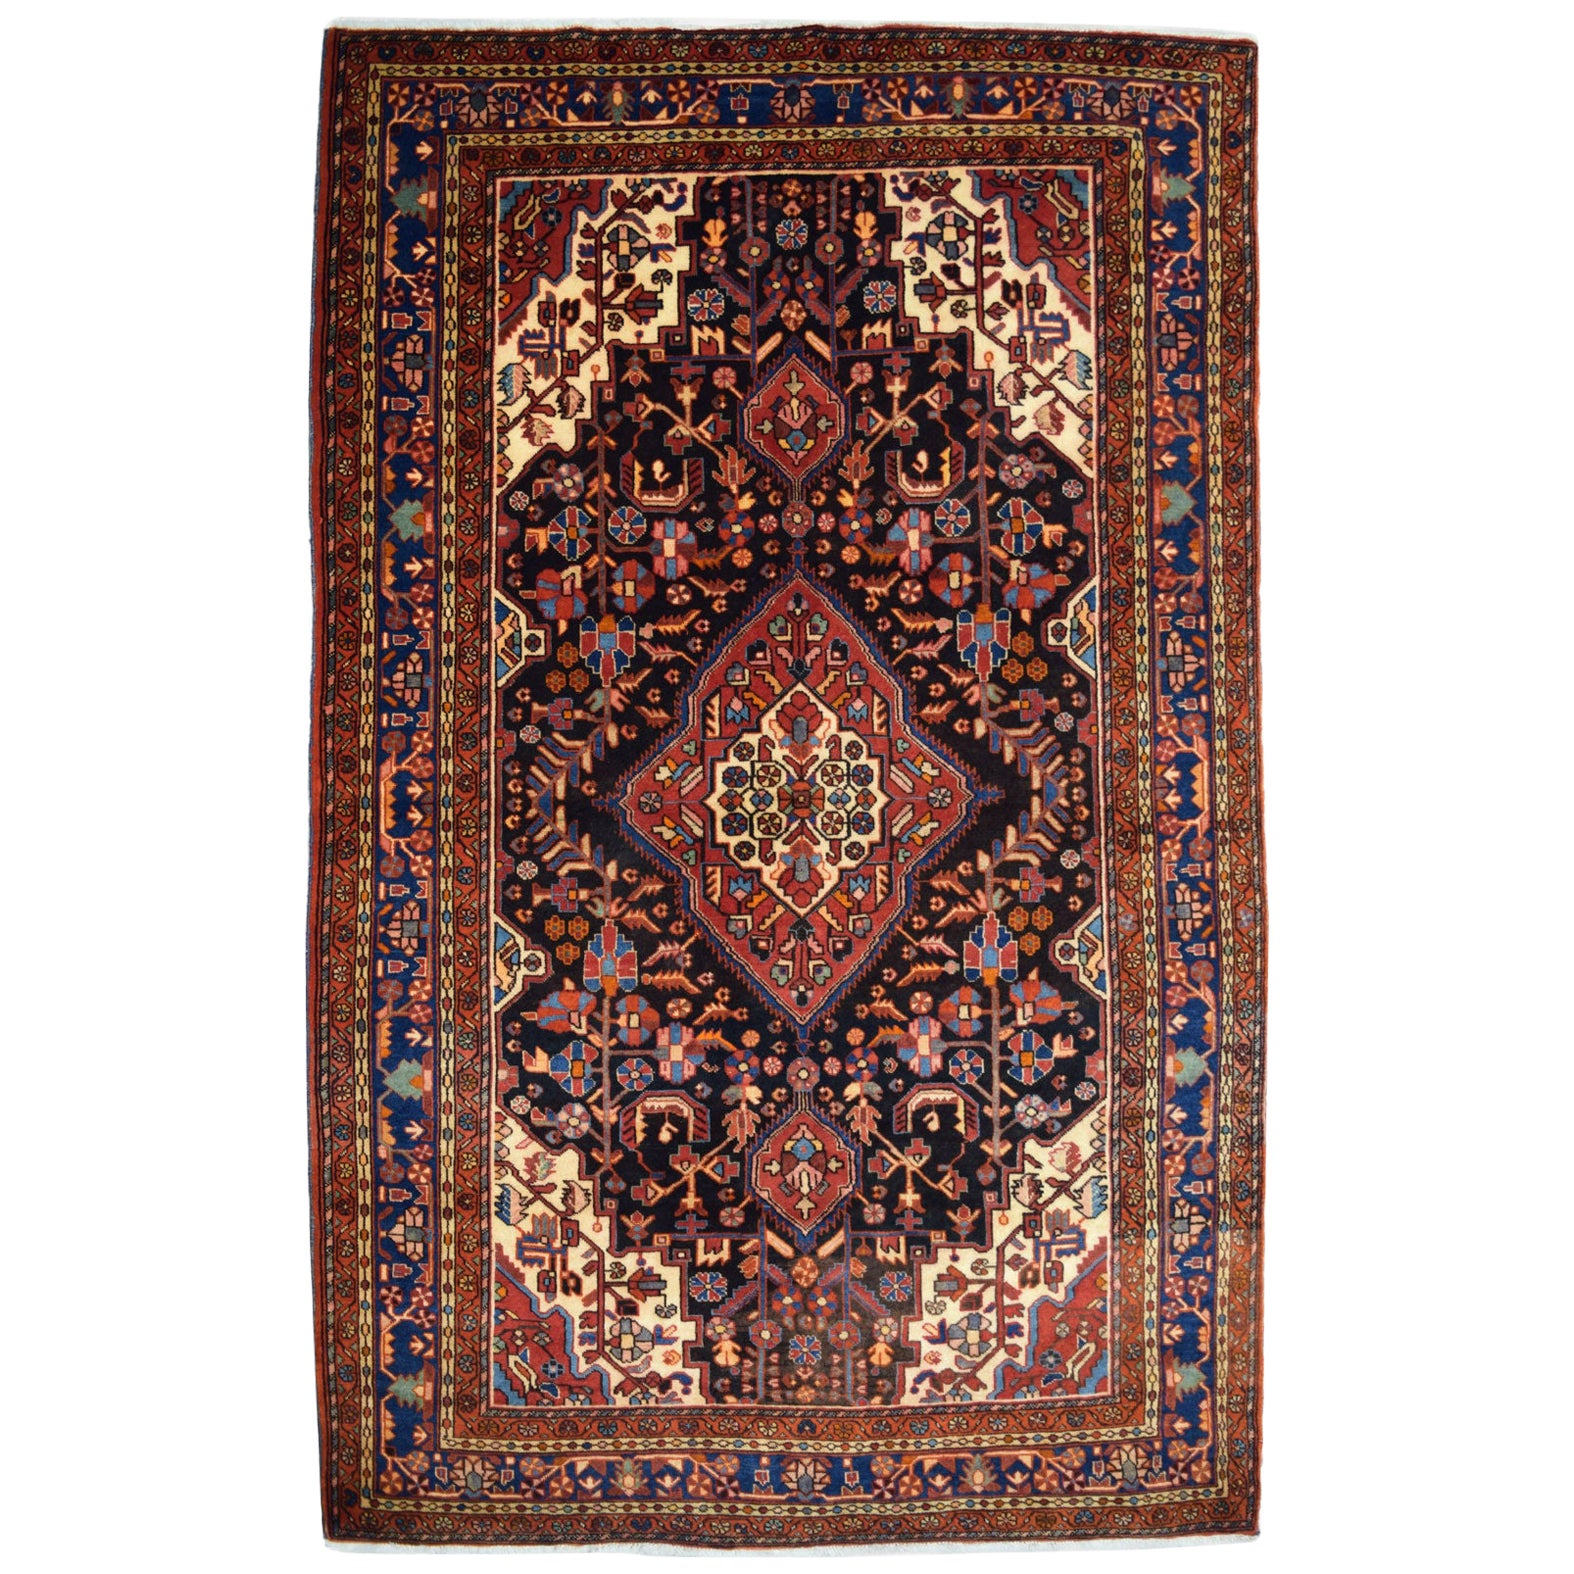 Traditional Persian Nahavand Carpet in Red, Black and Cream Wool